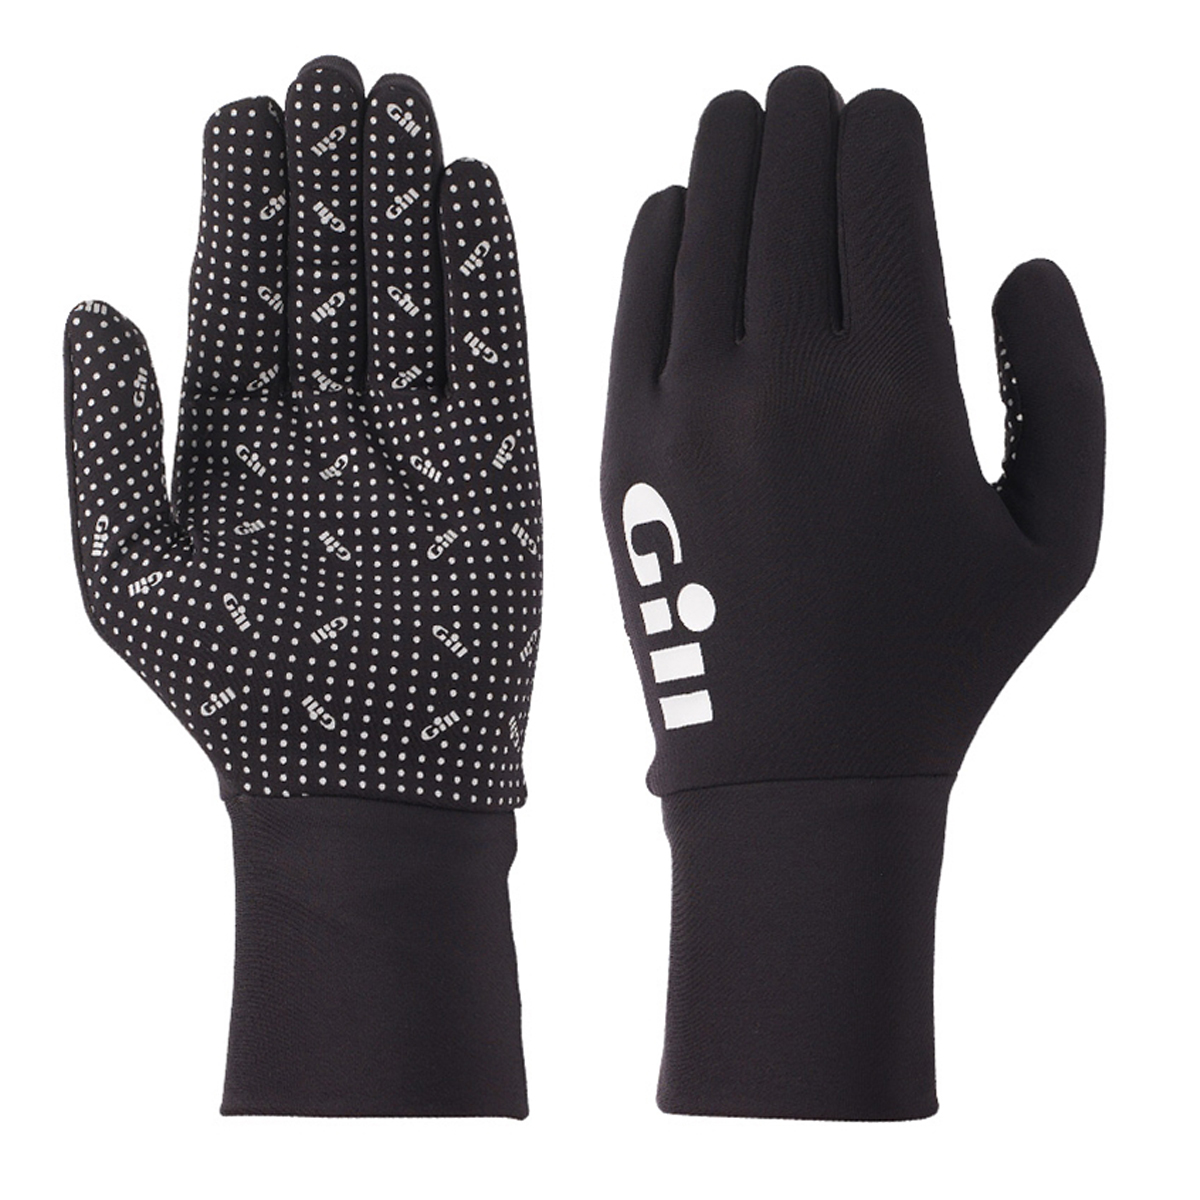 GILL PERFORMANCE FISHING GLOVE (FG22)